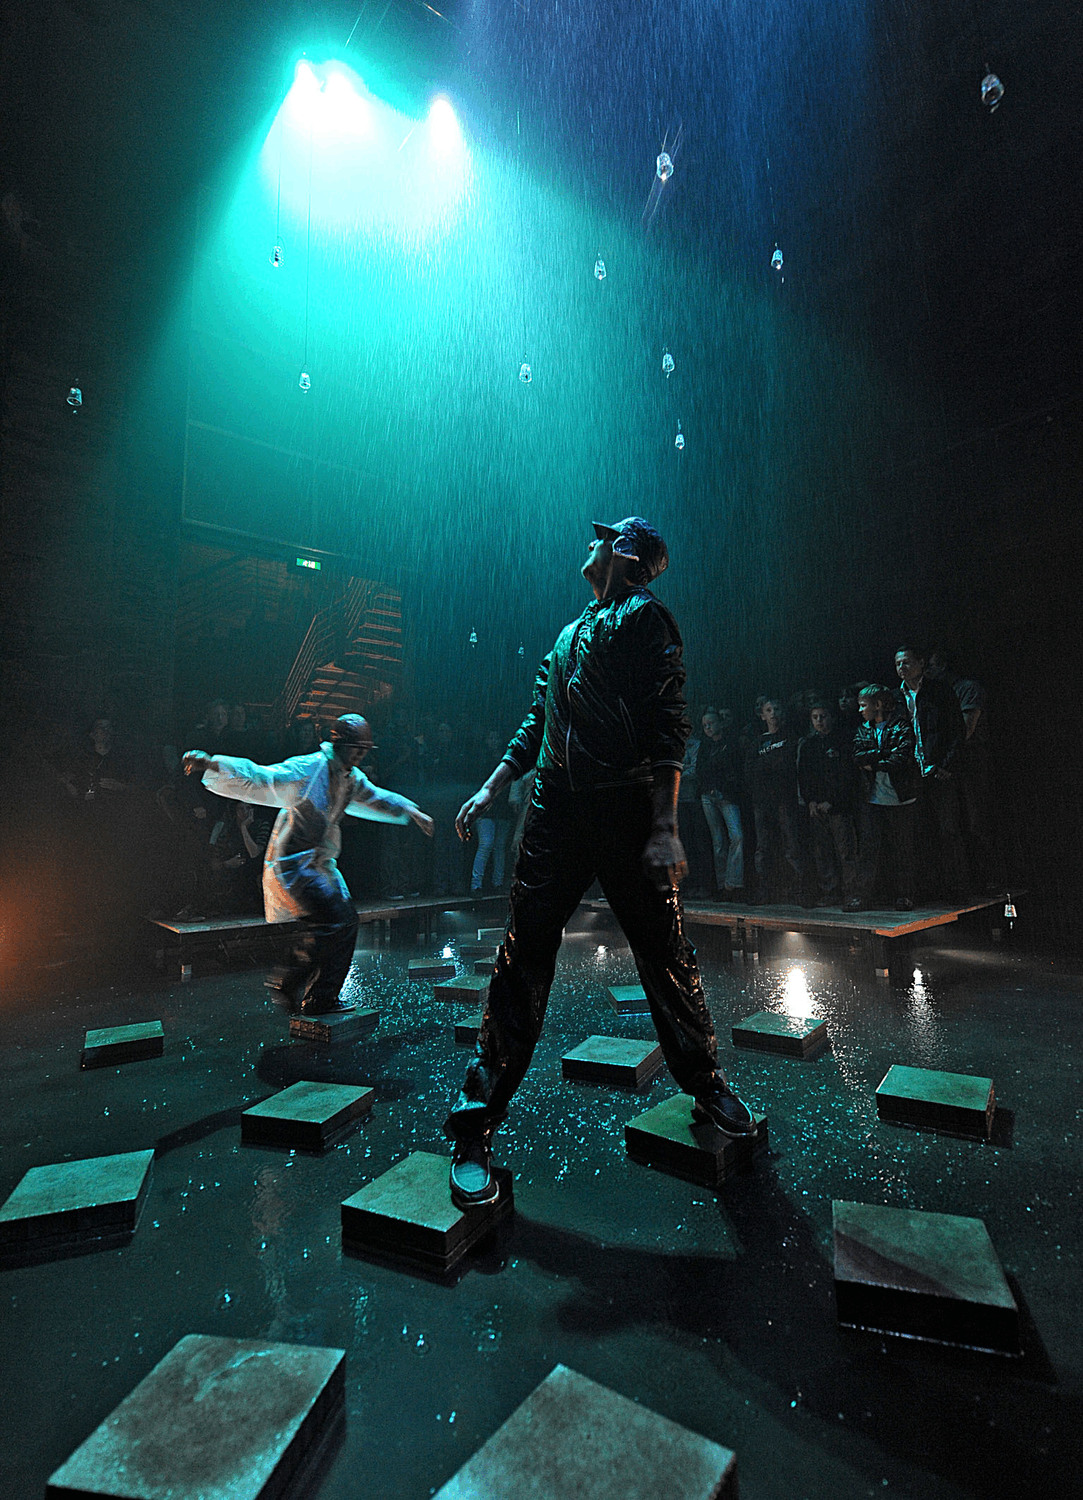 Two performers jump across water using stepping stones in a room where rain falls down upon them.